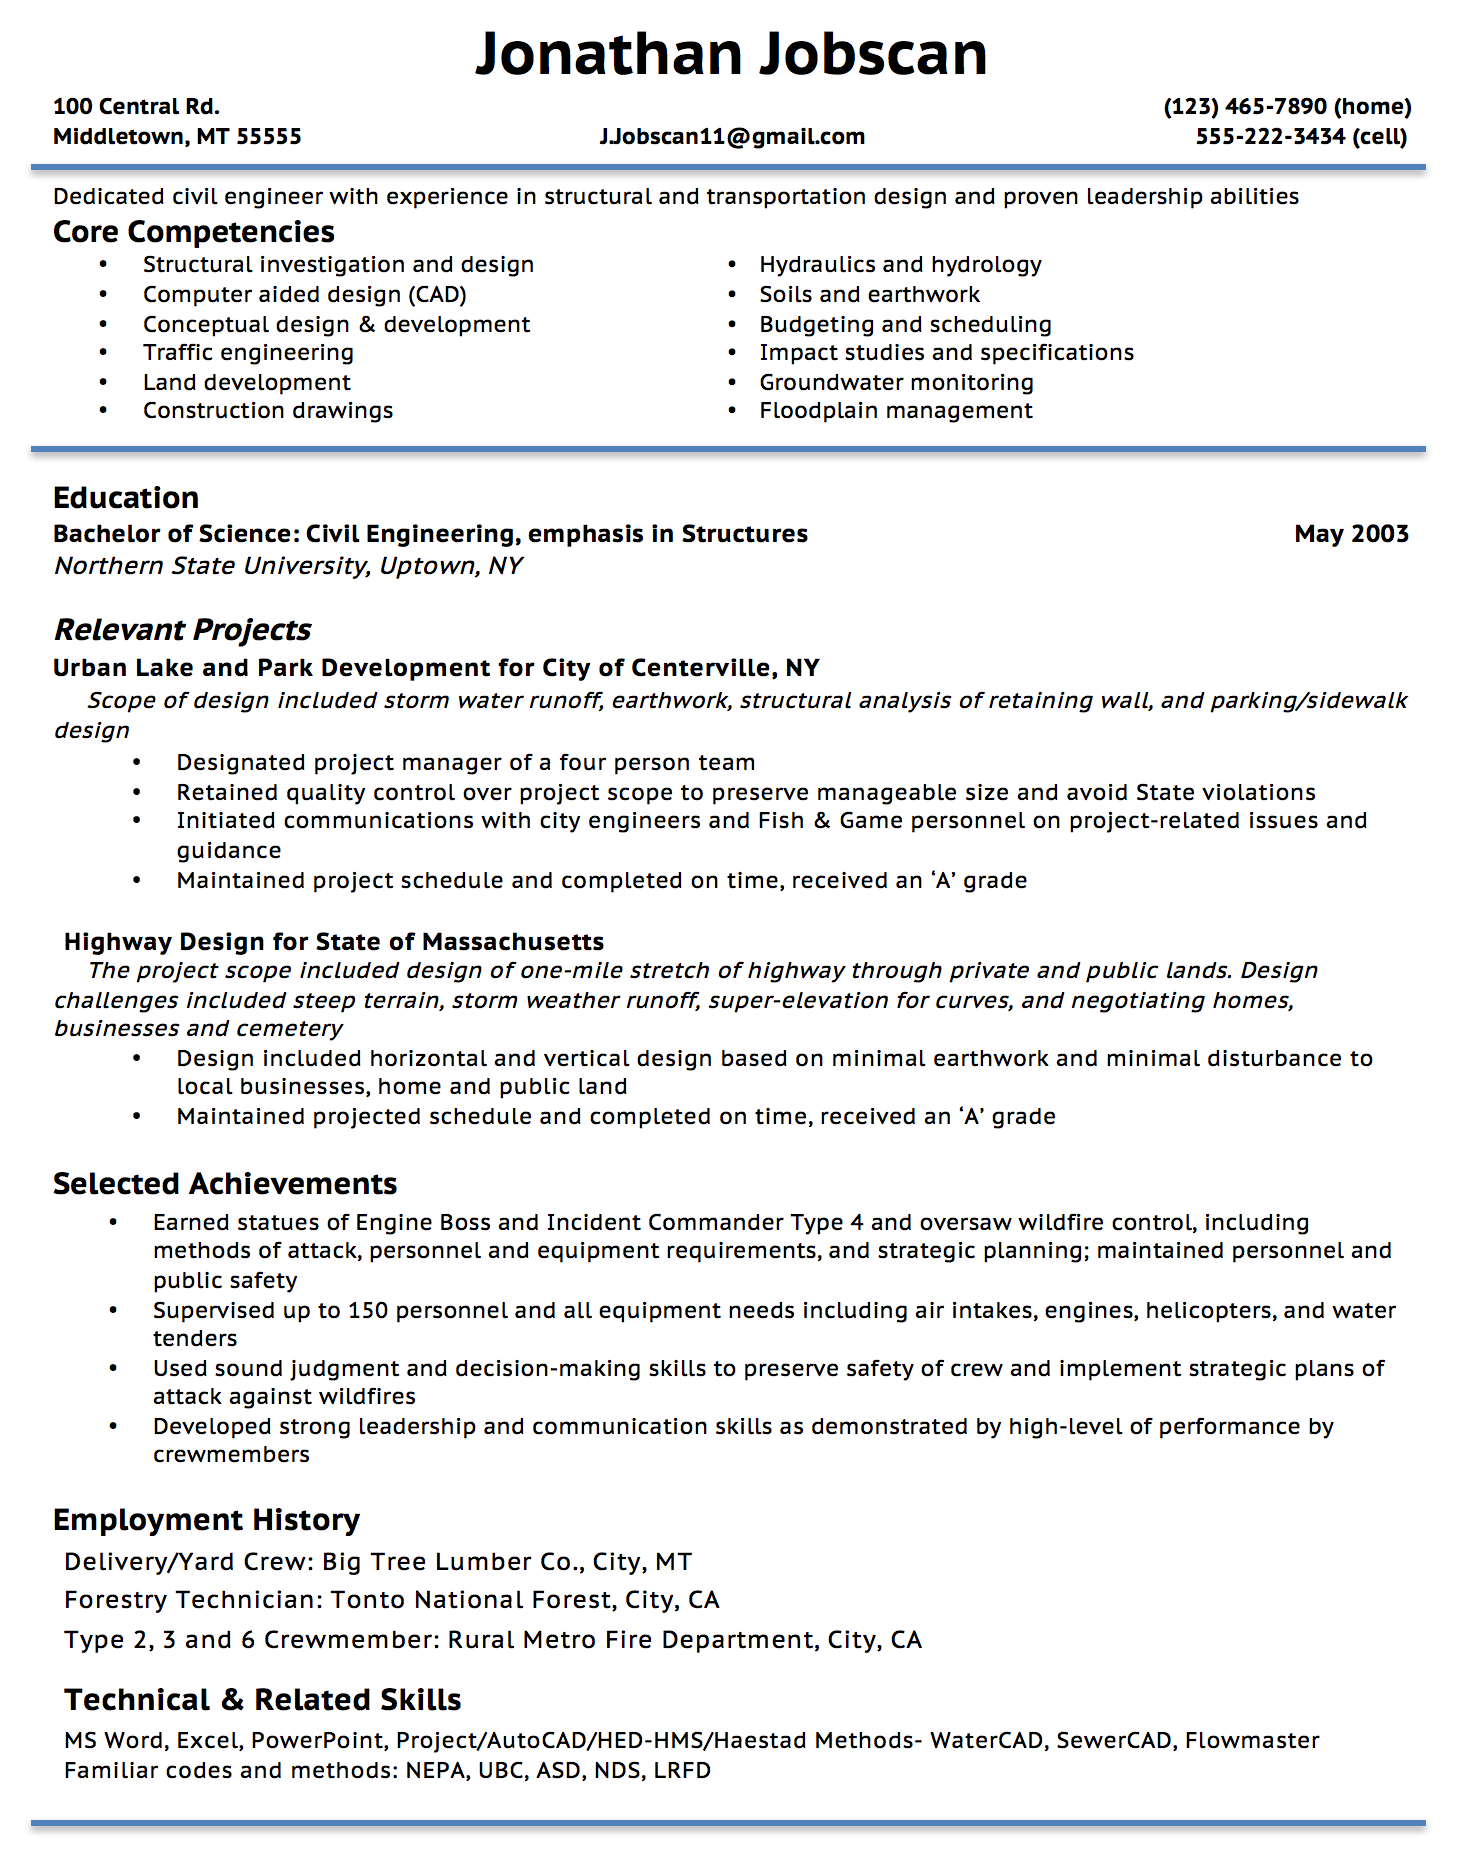 Opposenewapstandardsus  Fascinating Resume Writing Guide  Jobscan With Fair Example Of A Functional Resume Format With Cute How To Include References In A Resume Also School Social Worker Resume In Addition Resume For New Graduate And Excellent Customer Service Skills Resume As Well As Field Service Technician Resume Additionally Front Office Manager Resume From Jobscanco With Opposenewapstandardsus  Fair Resume Writing Guide  Jobscan With Cute Example Of A Functional Resume Format And Fascinating How To Include References In A Resume Also School Social Worker Resume In Addition Resume For New Graduate From Jobscanco